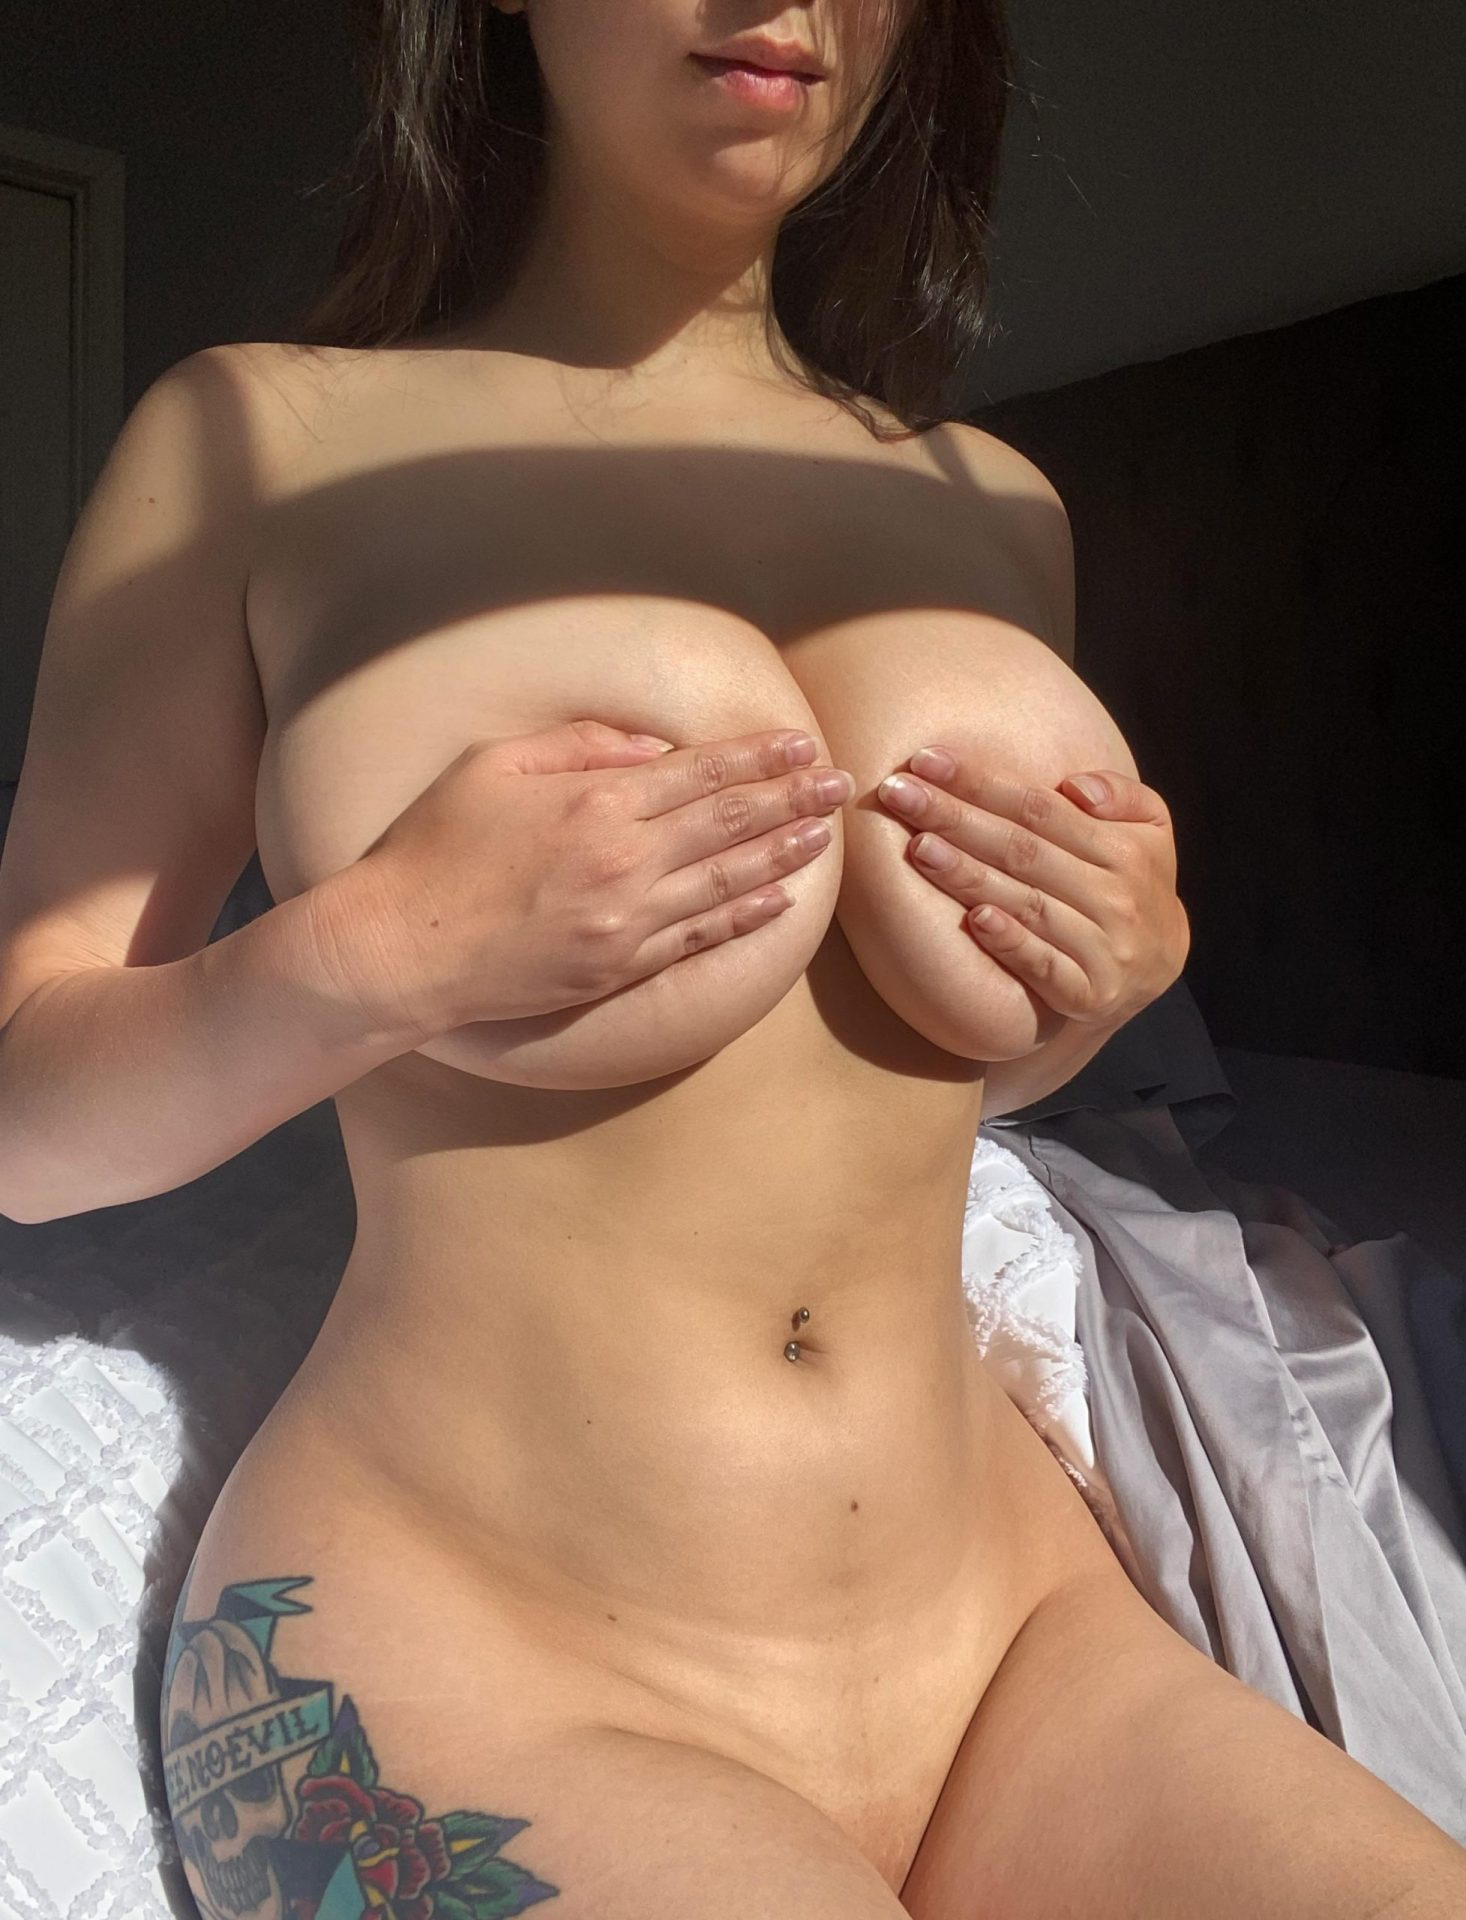 Which part of me are you cumming on first?